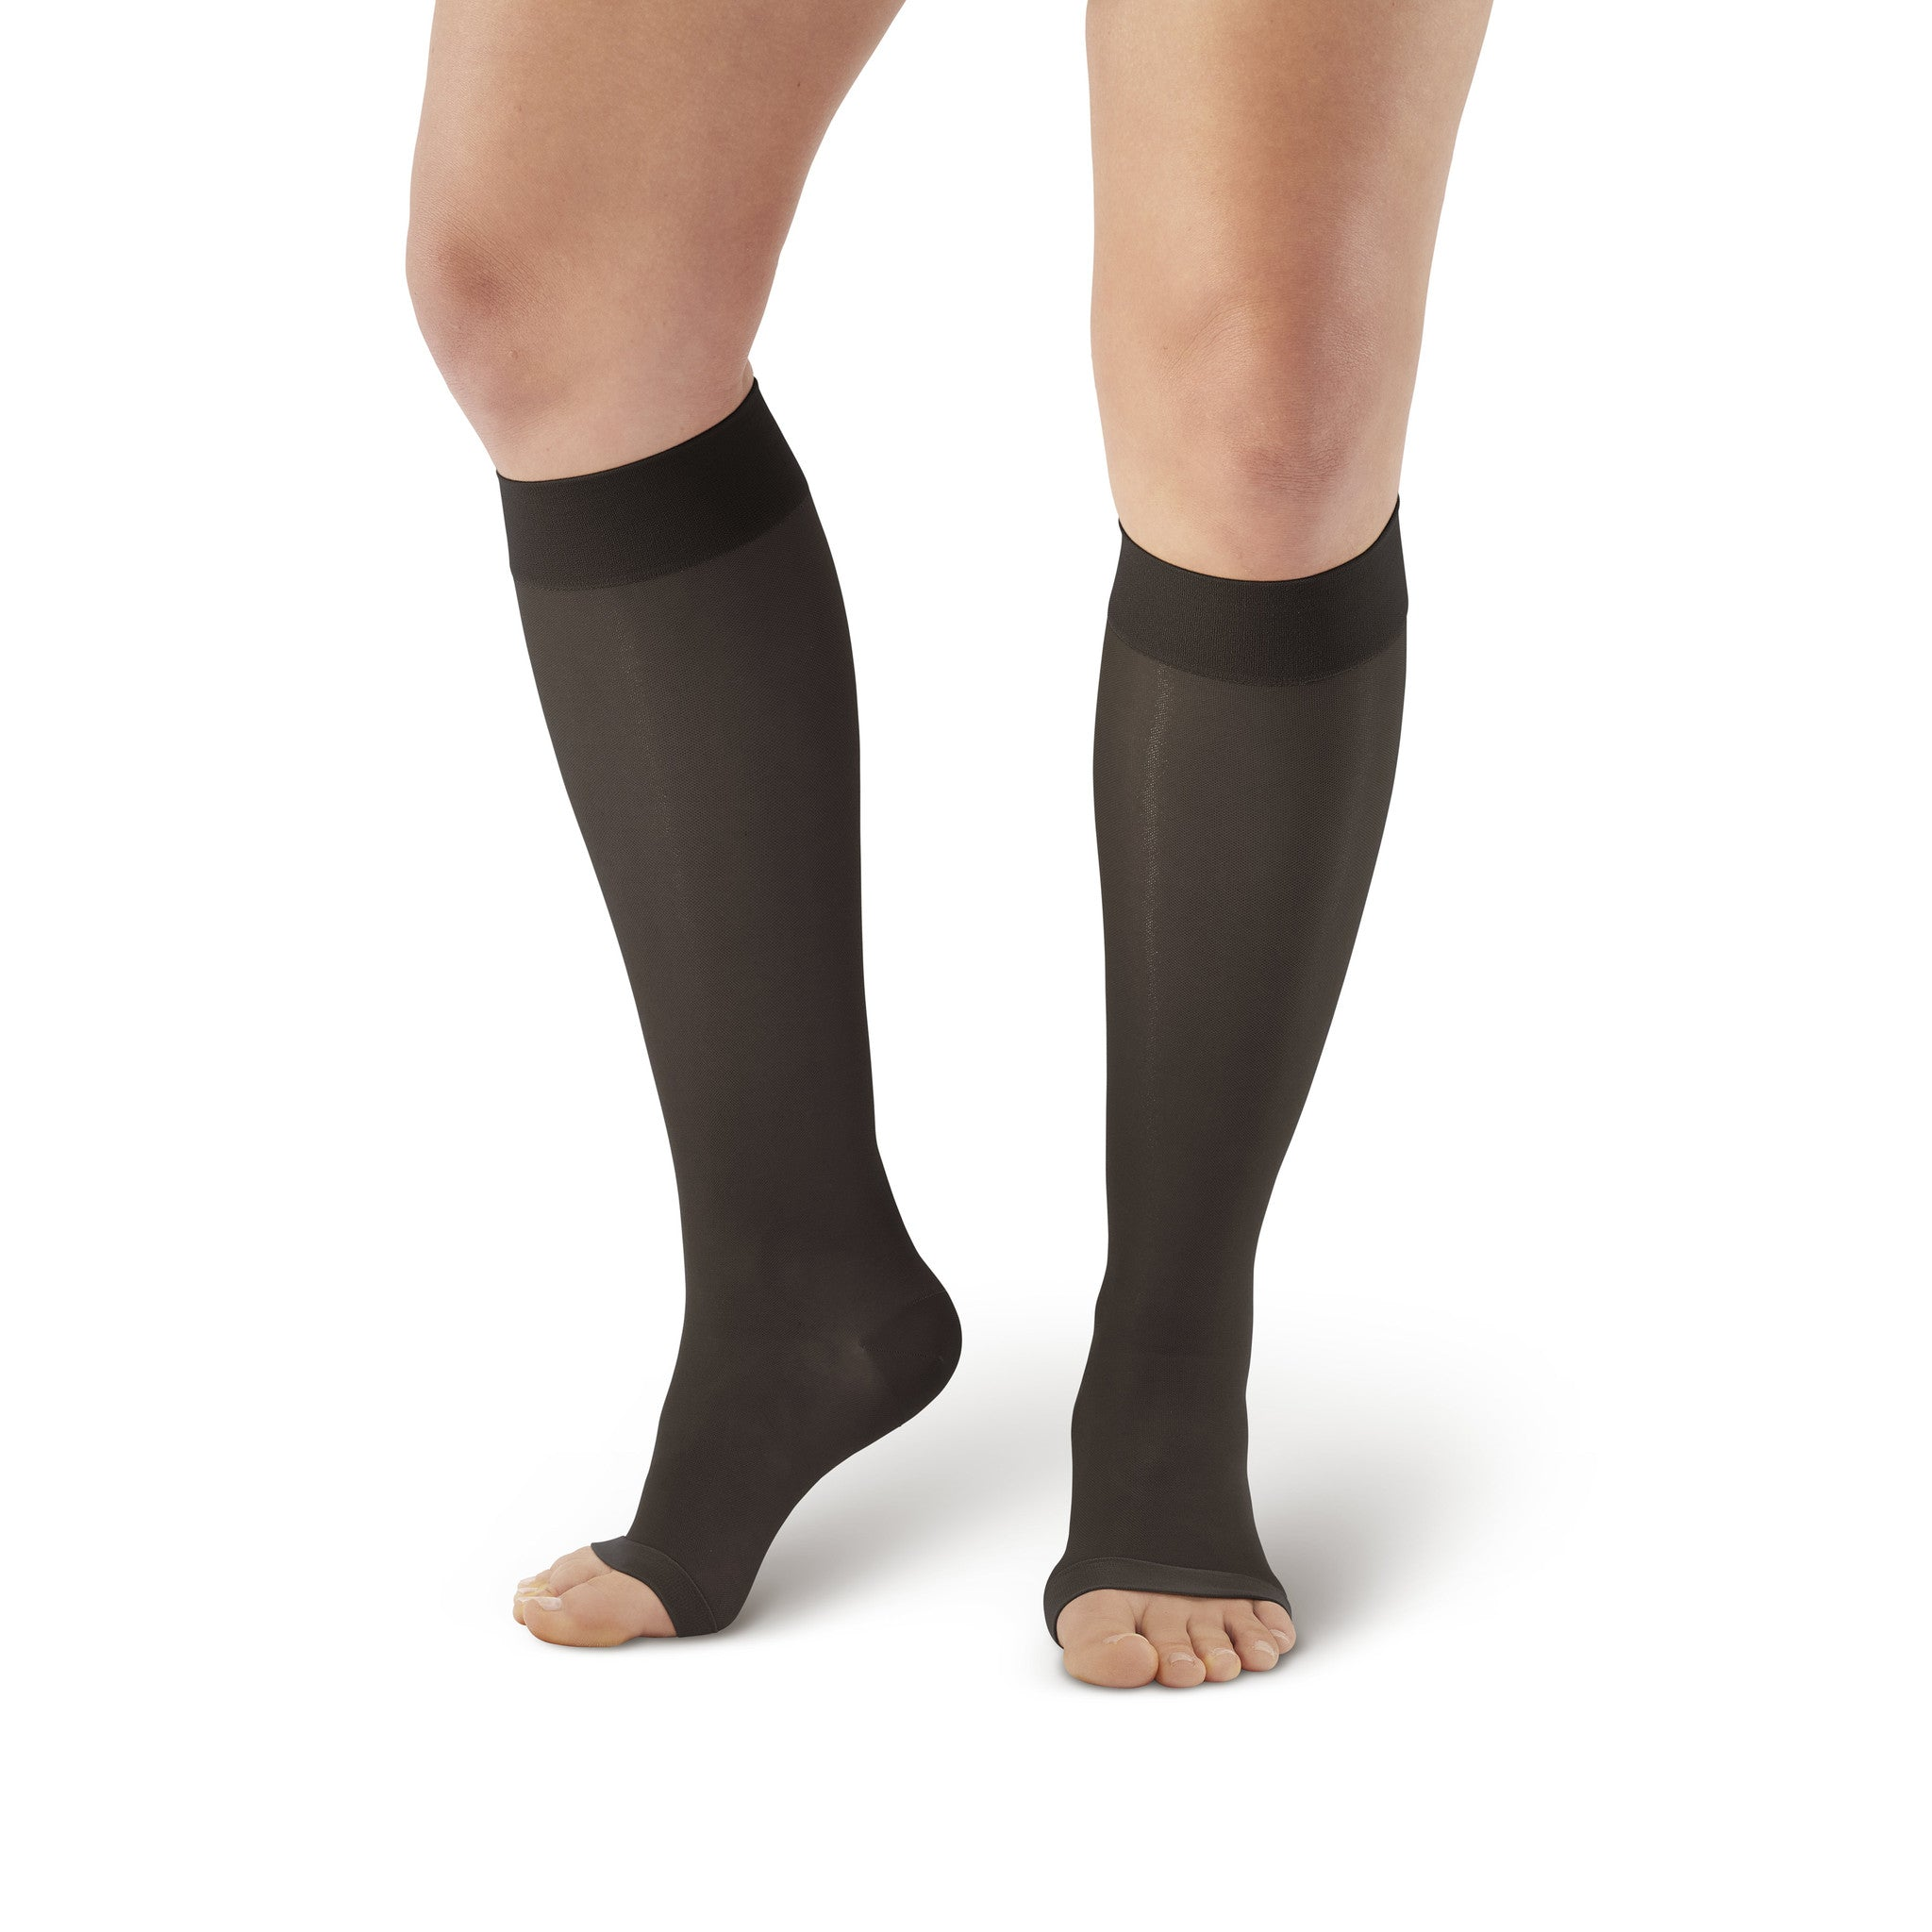 a480a58e87 ... AW Style 41 Sheer Support Open Toe Knee Highs - 15-20 mmHg - Black ...